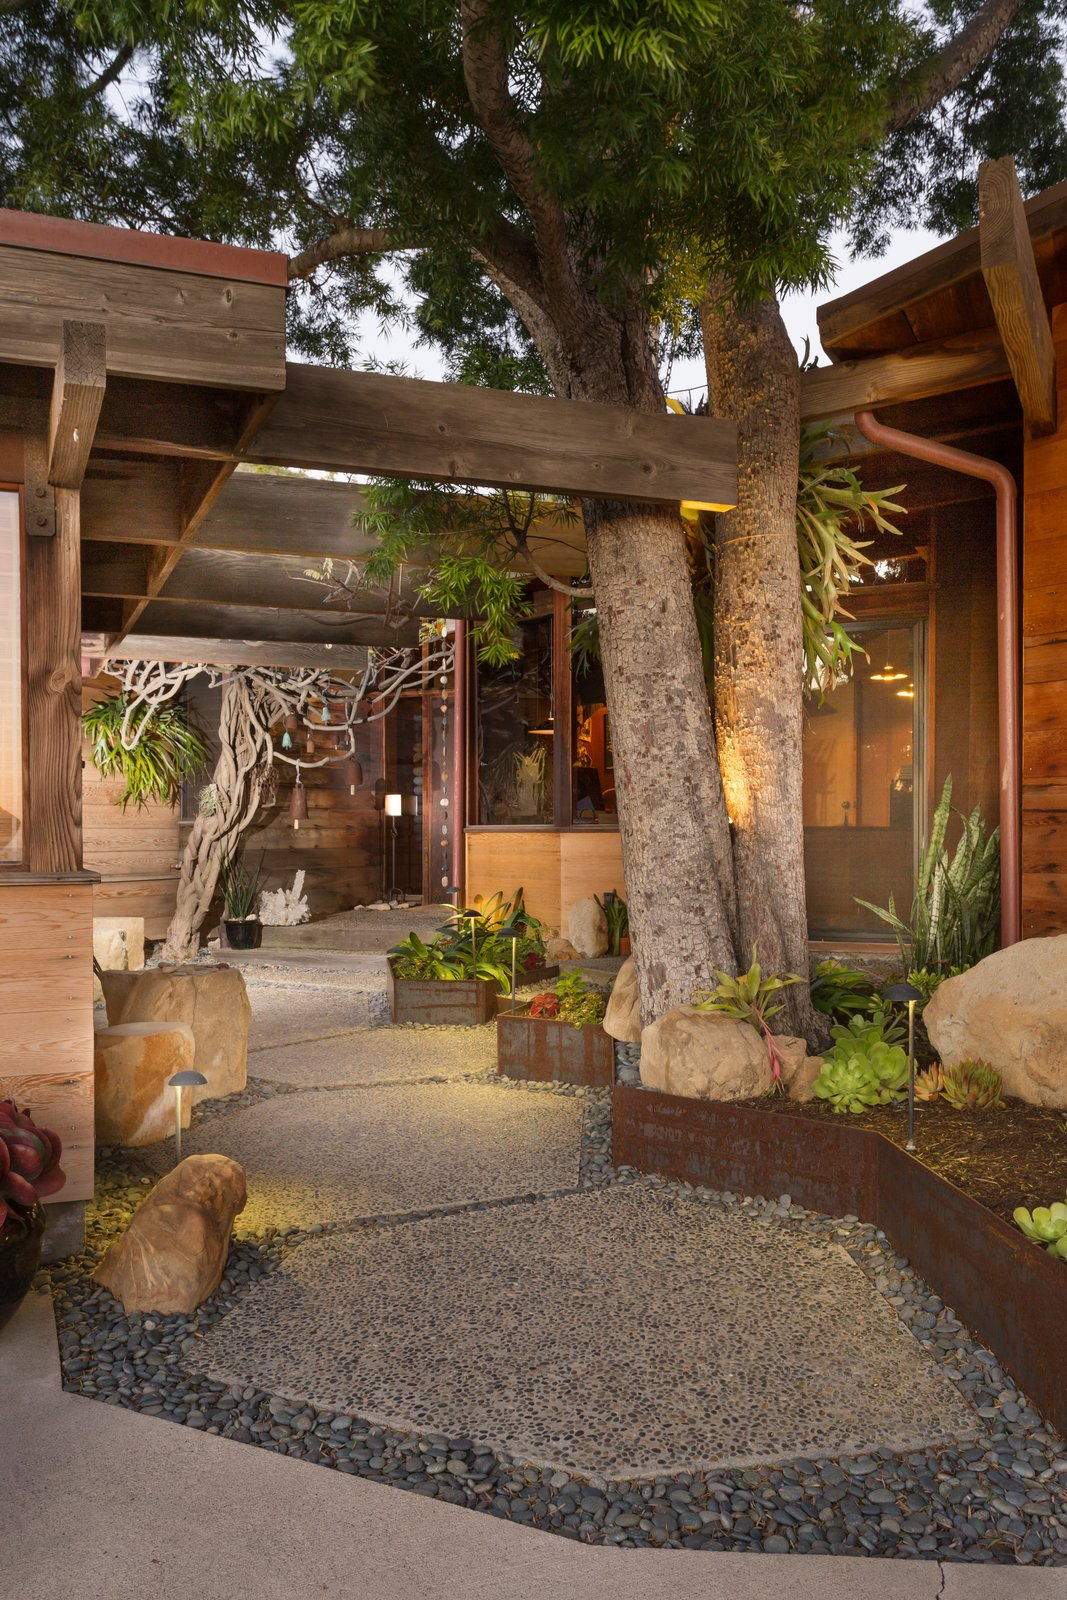 A 1974 Masterpiece Is Put on the Market by a Family Friend of the Late Julius Shulman - Photo 8 of 13